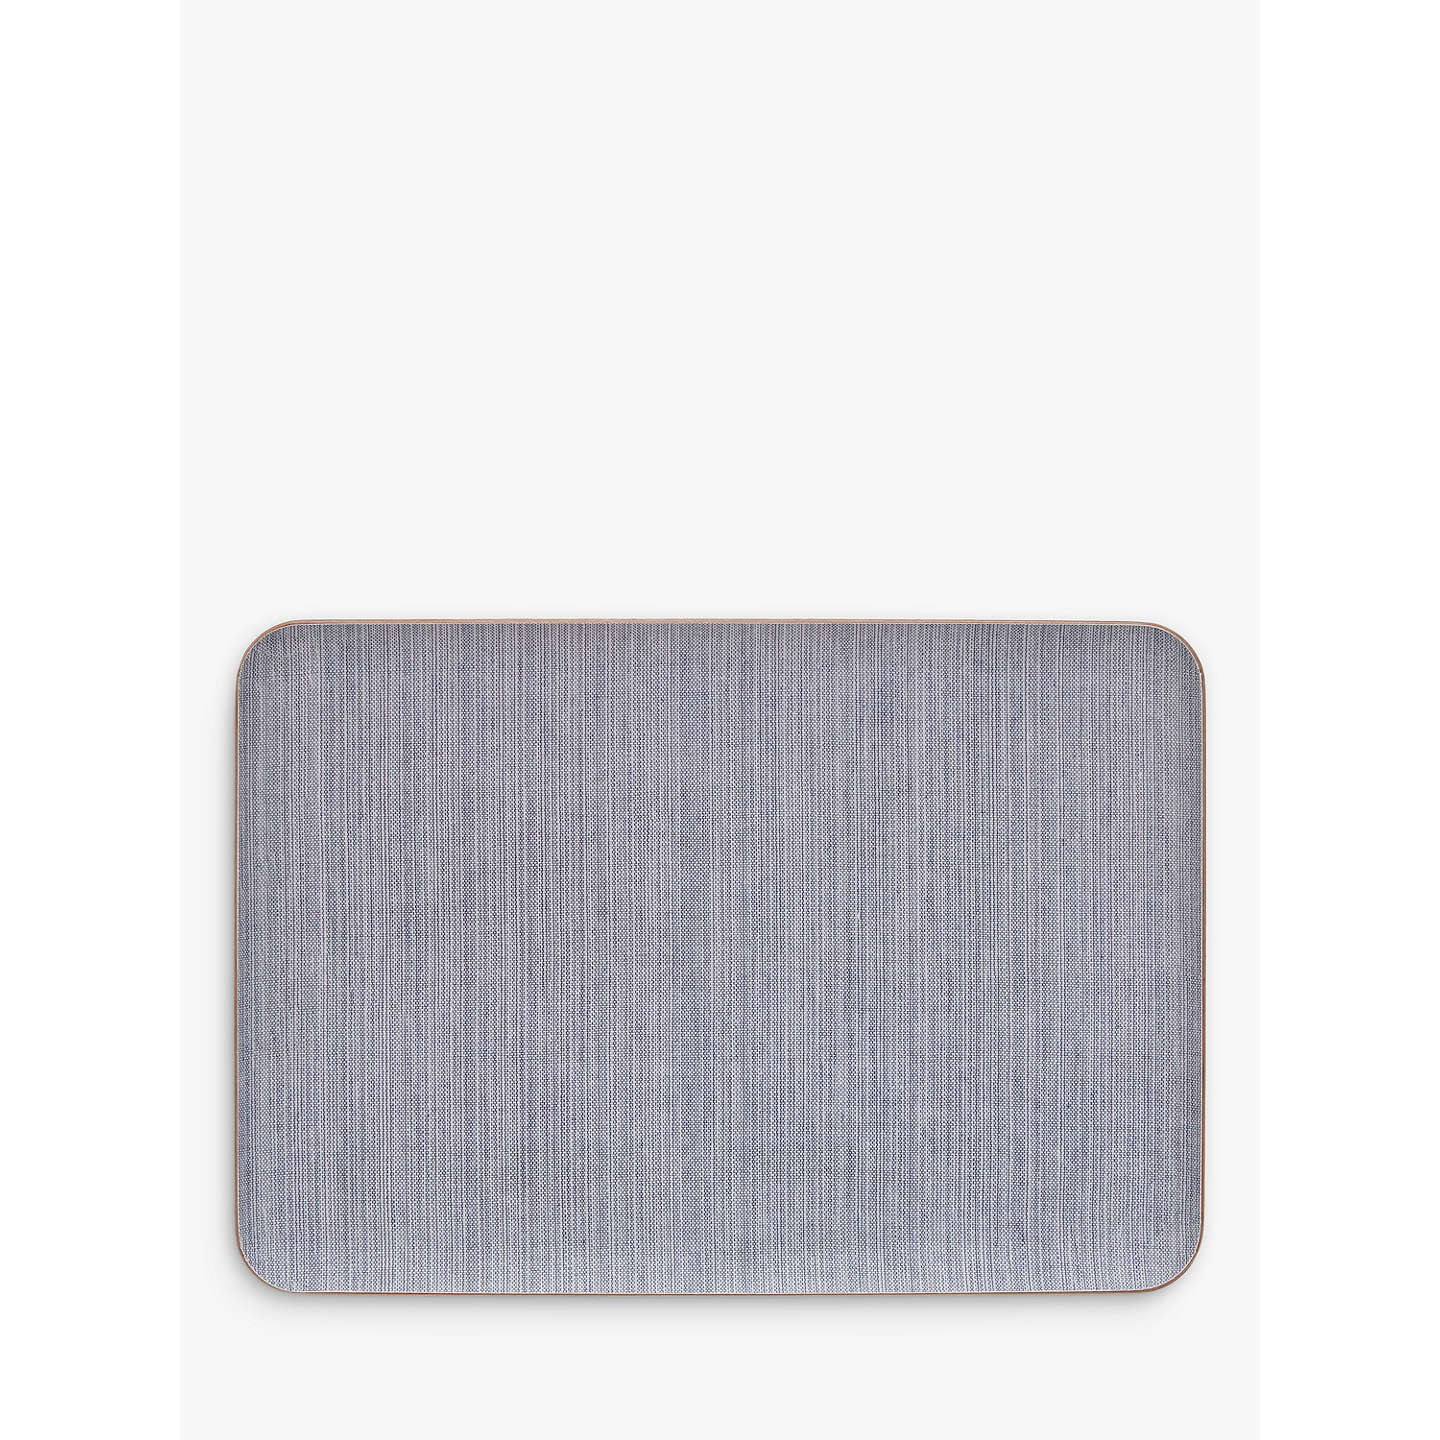 BuyJohn Lewis Coastal Tray, Large Online at johnlewis.com